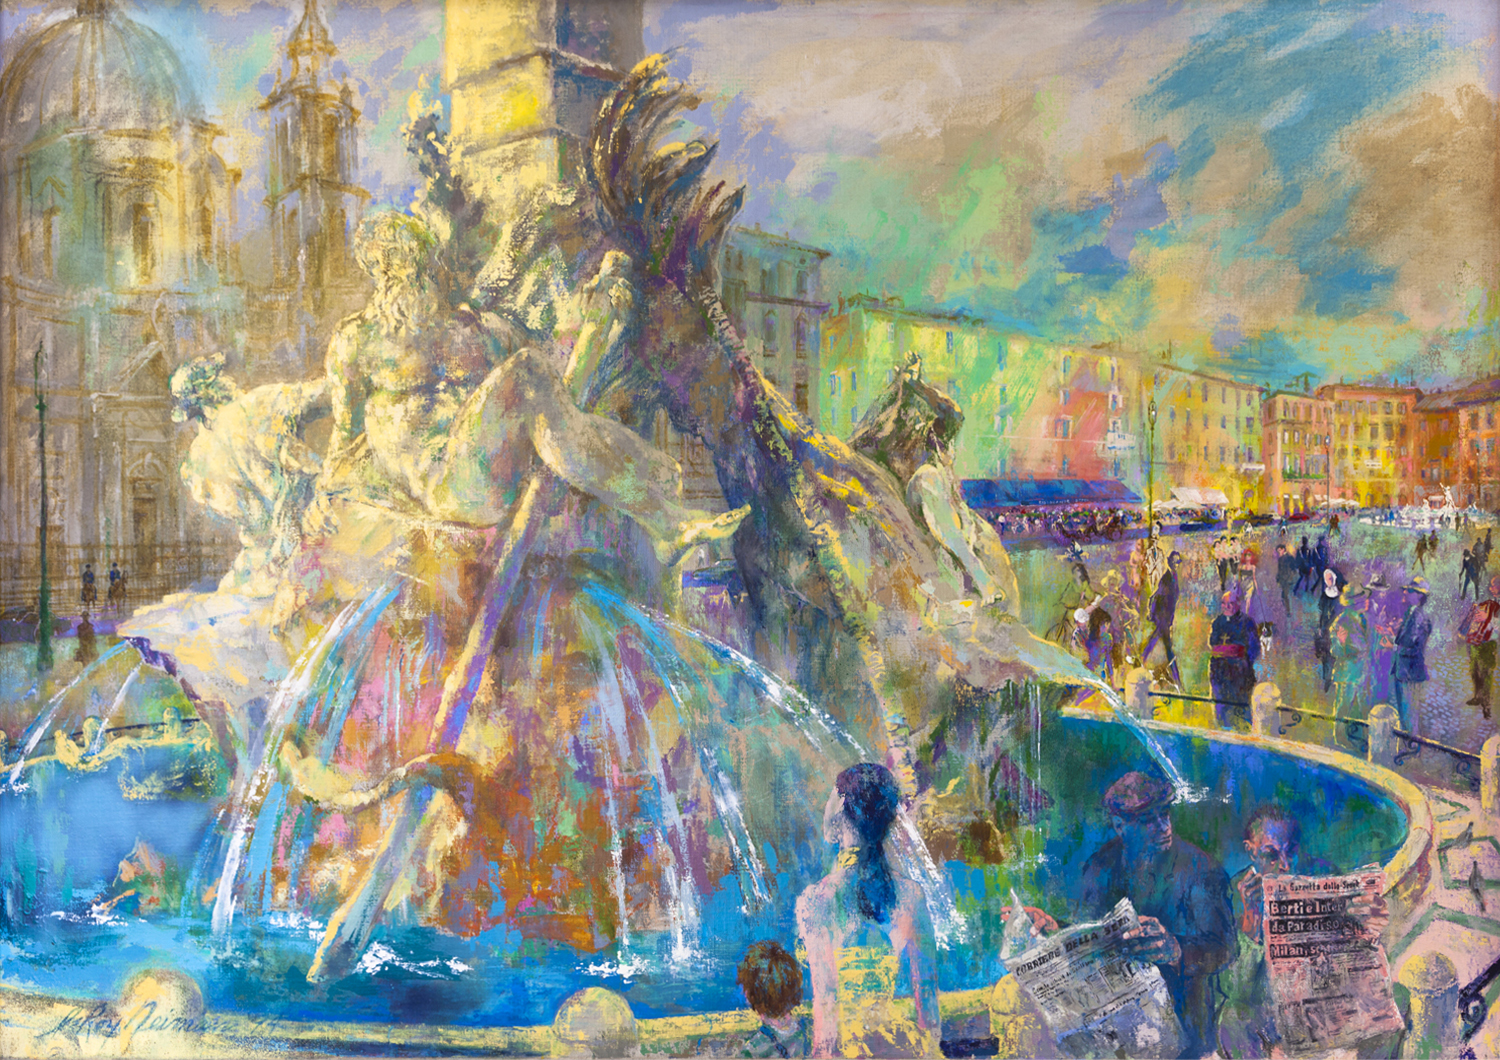 Piazza Navona, Rome, acrylic & enamel on canvas, 72.25 x 102.4 in., 1994